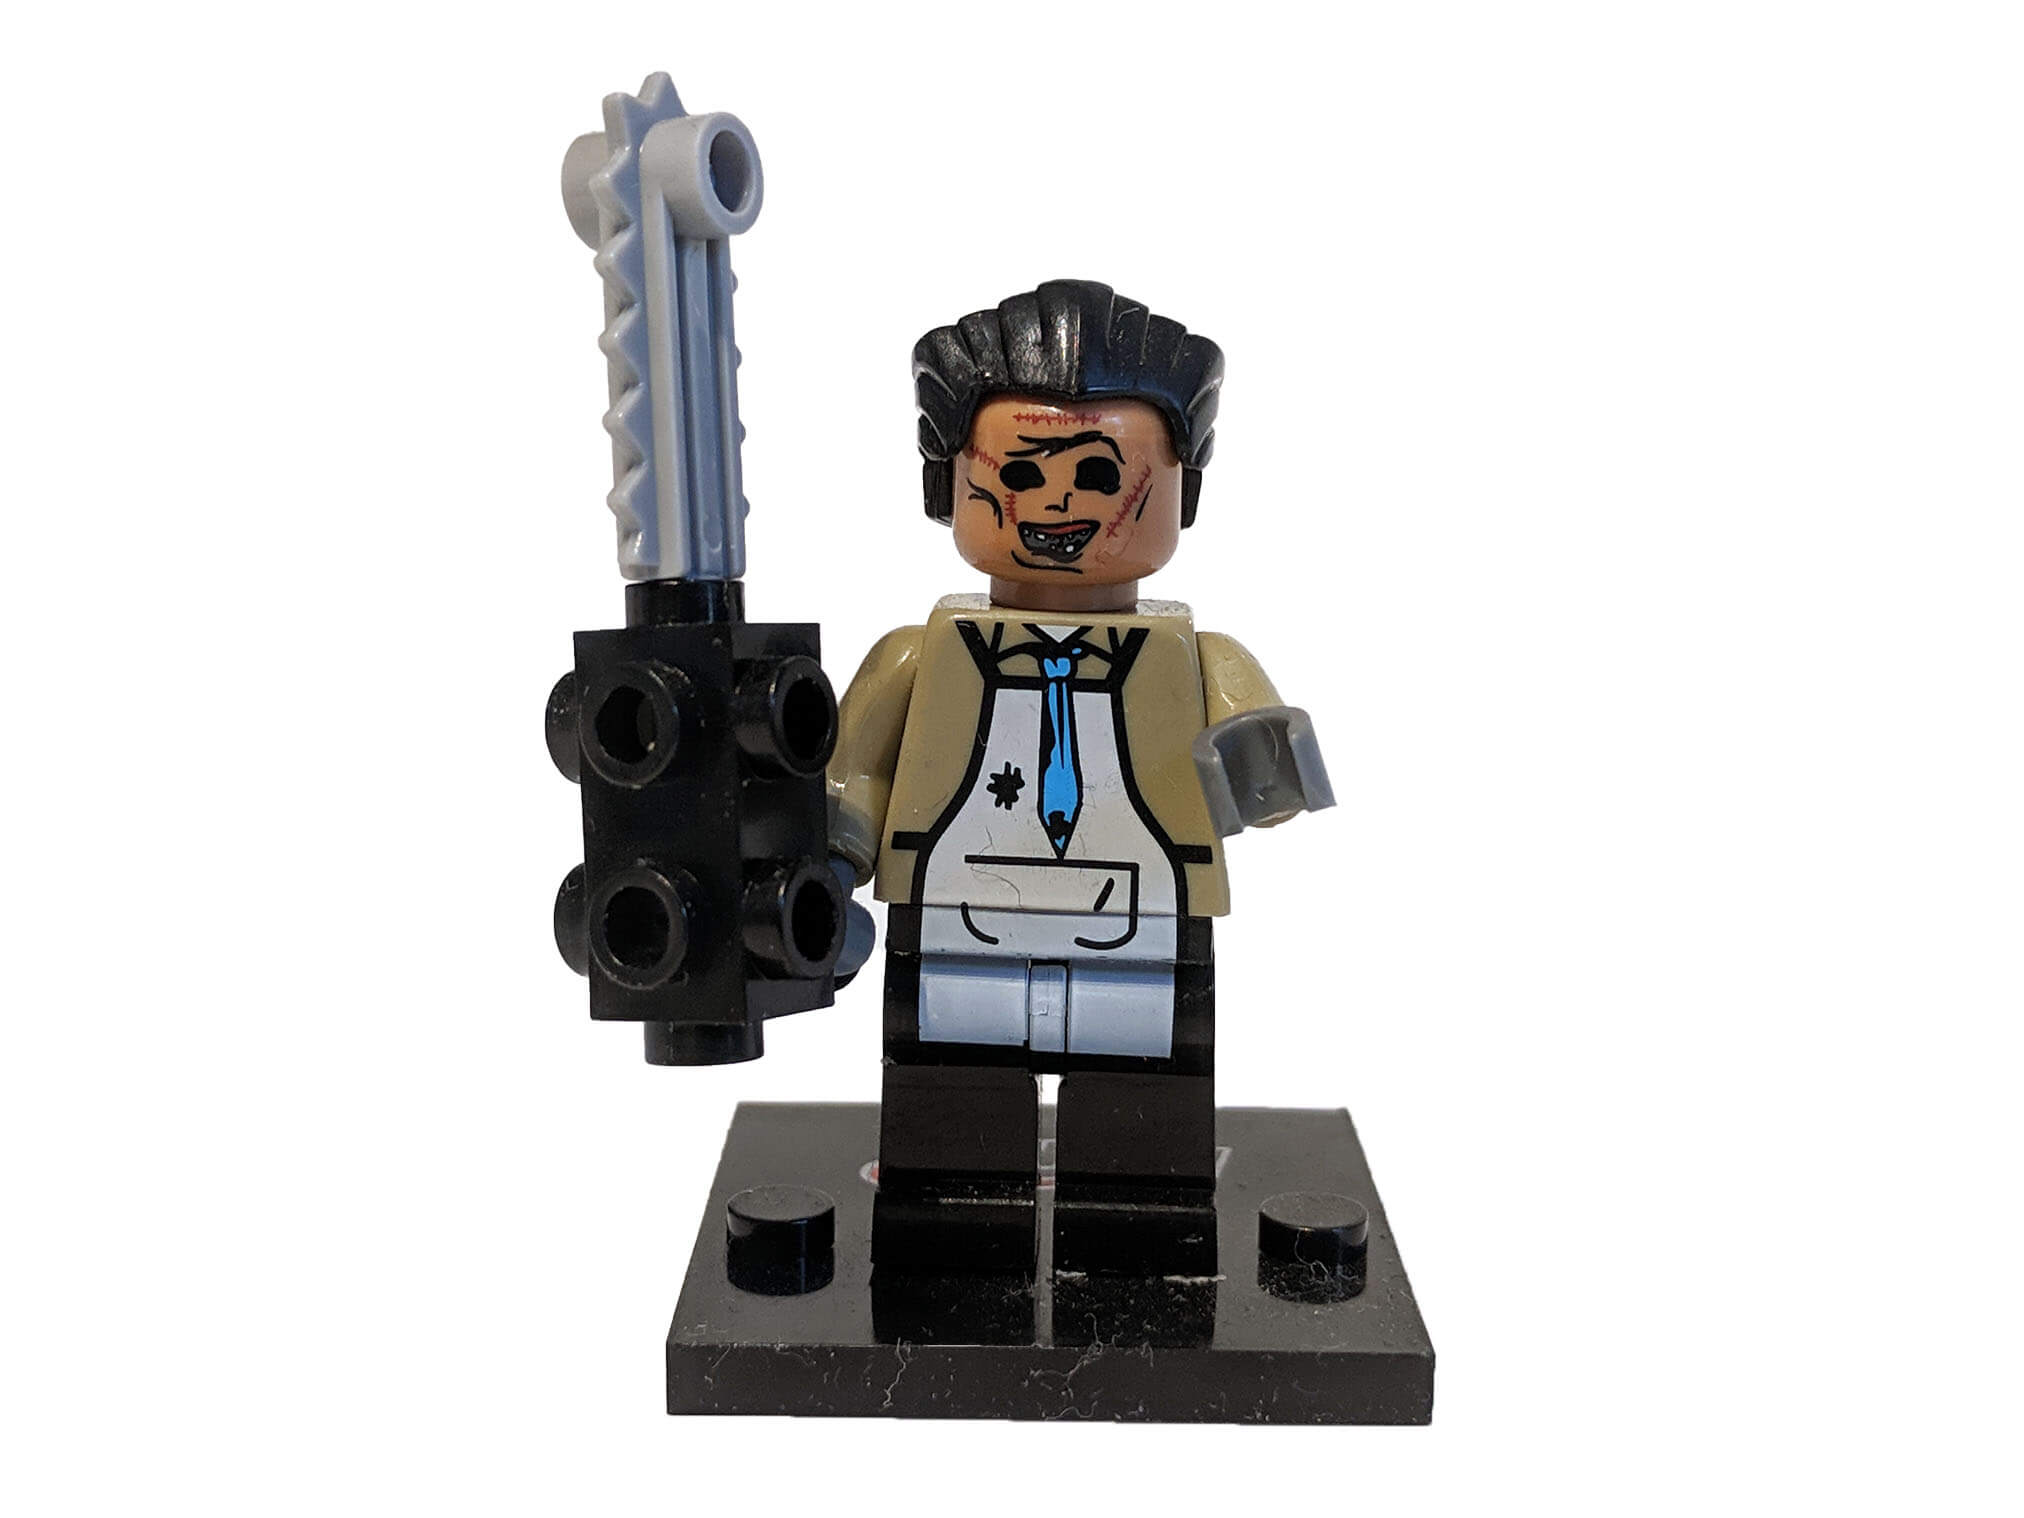 LEGO-Leatherface.jpg